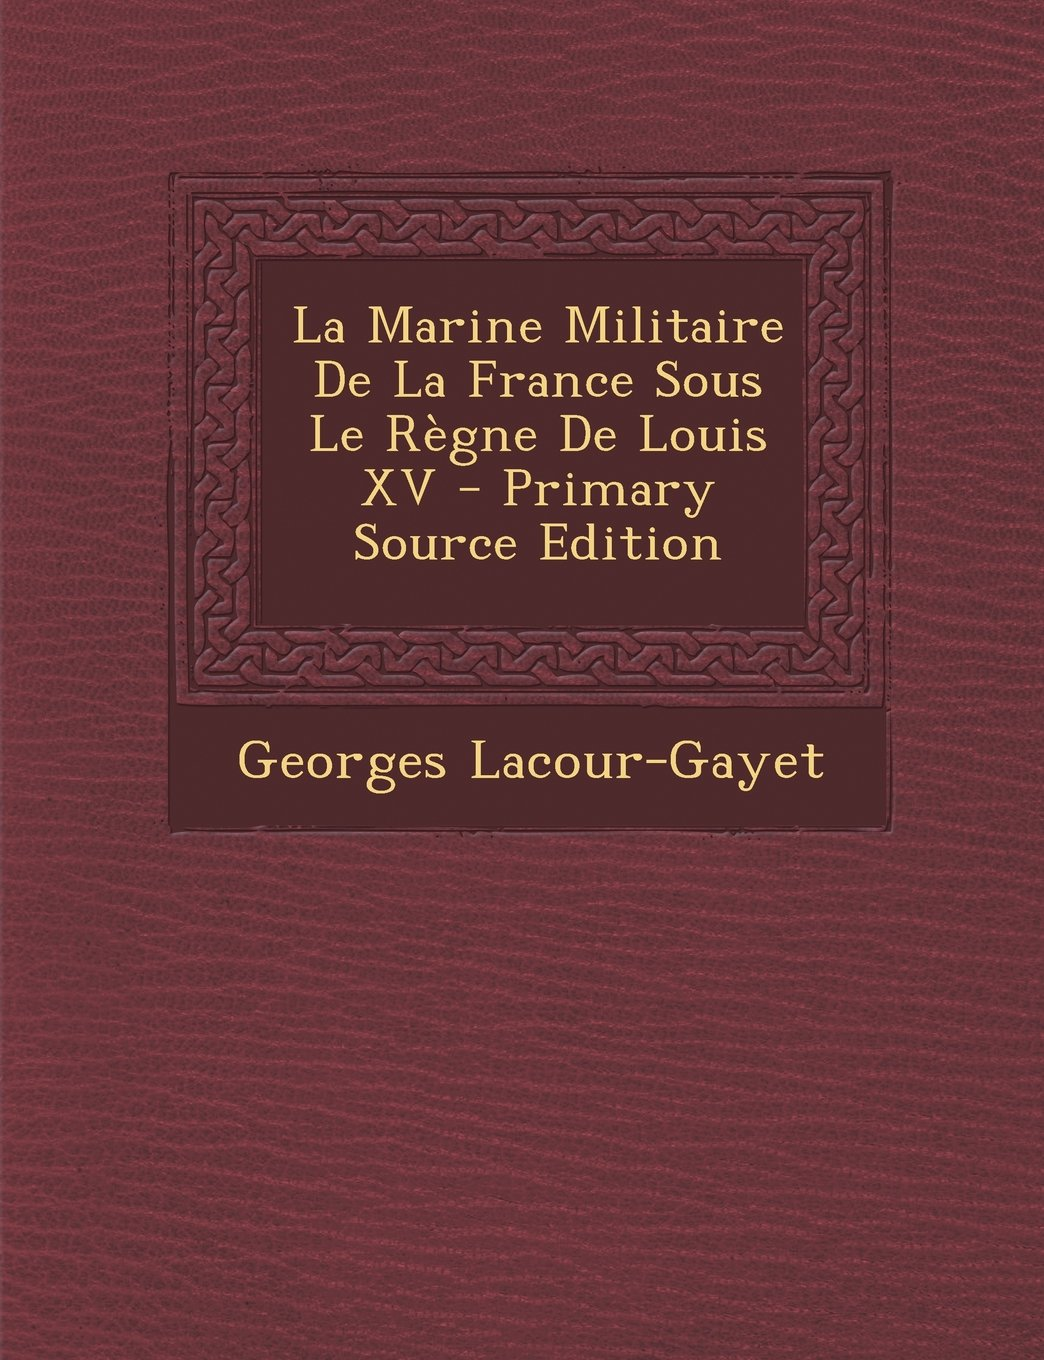 Download La Marine Militaire de La France Sous Le Regne de Louis XV - Primary Source Edition (French Edition) pdf